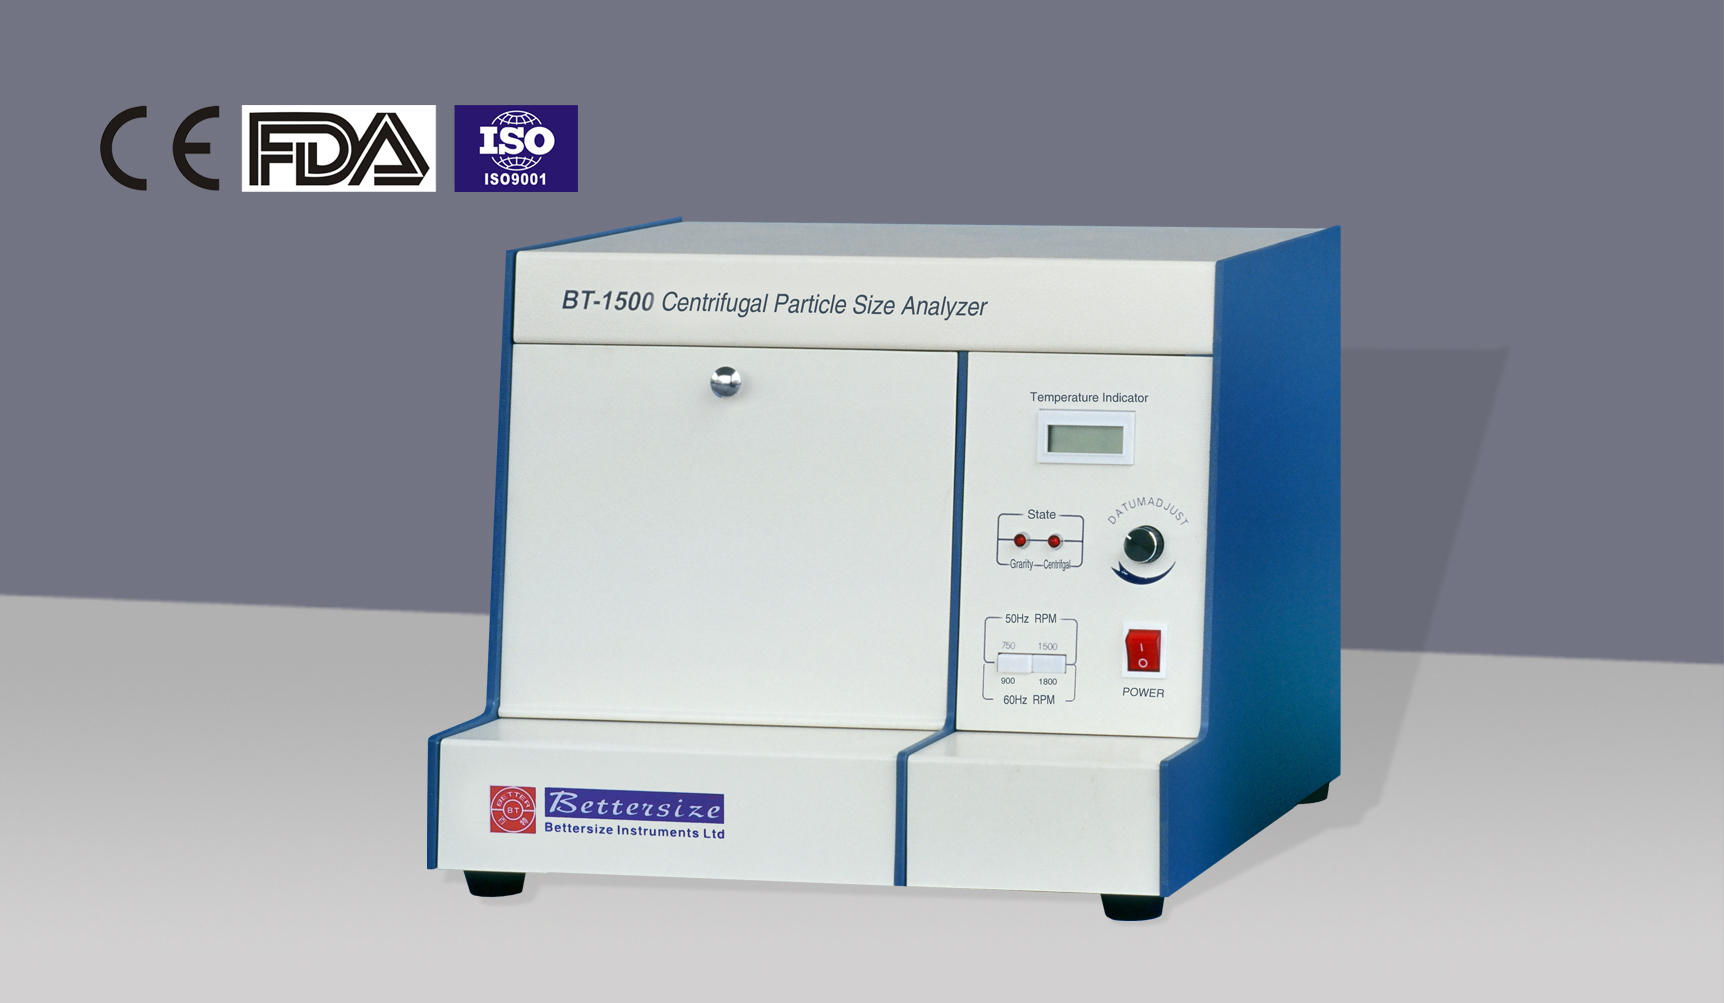 BT-1500 Centrifugal Sedimentation Particle Size Analyzer